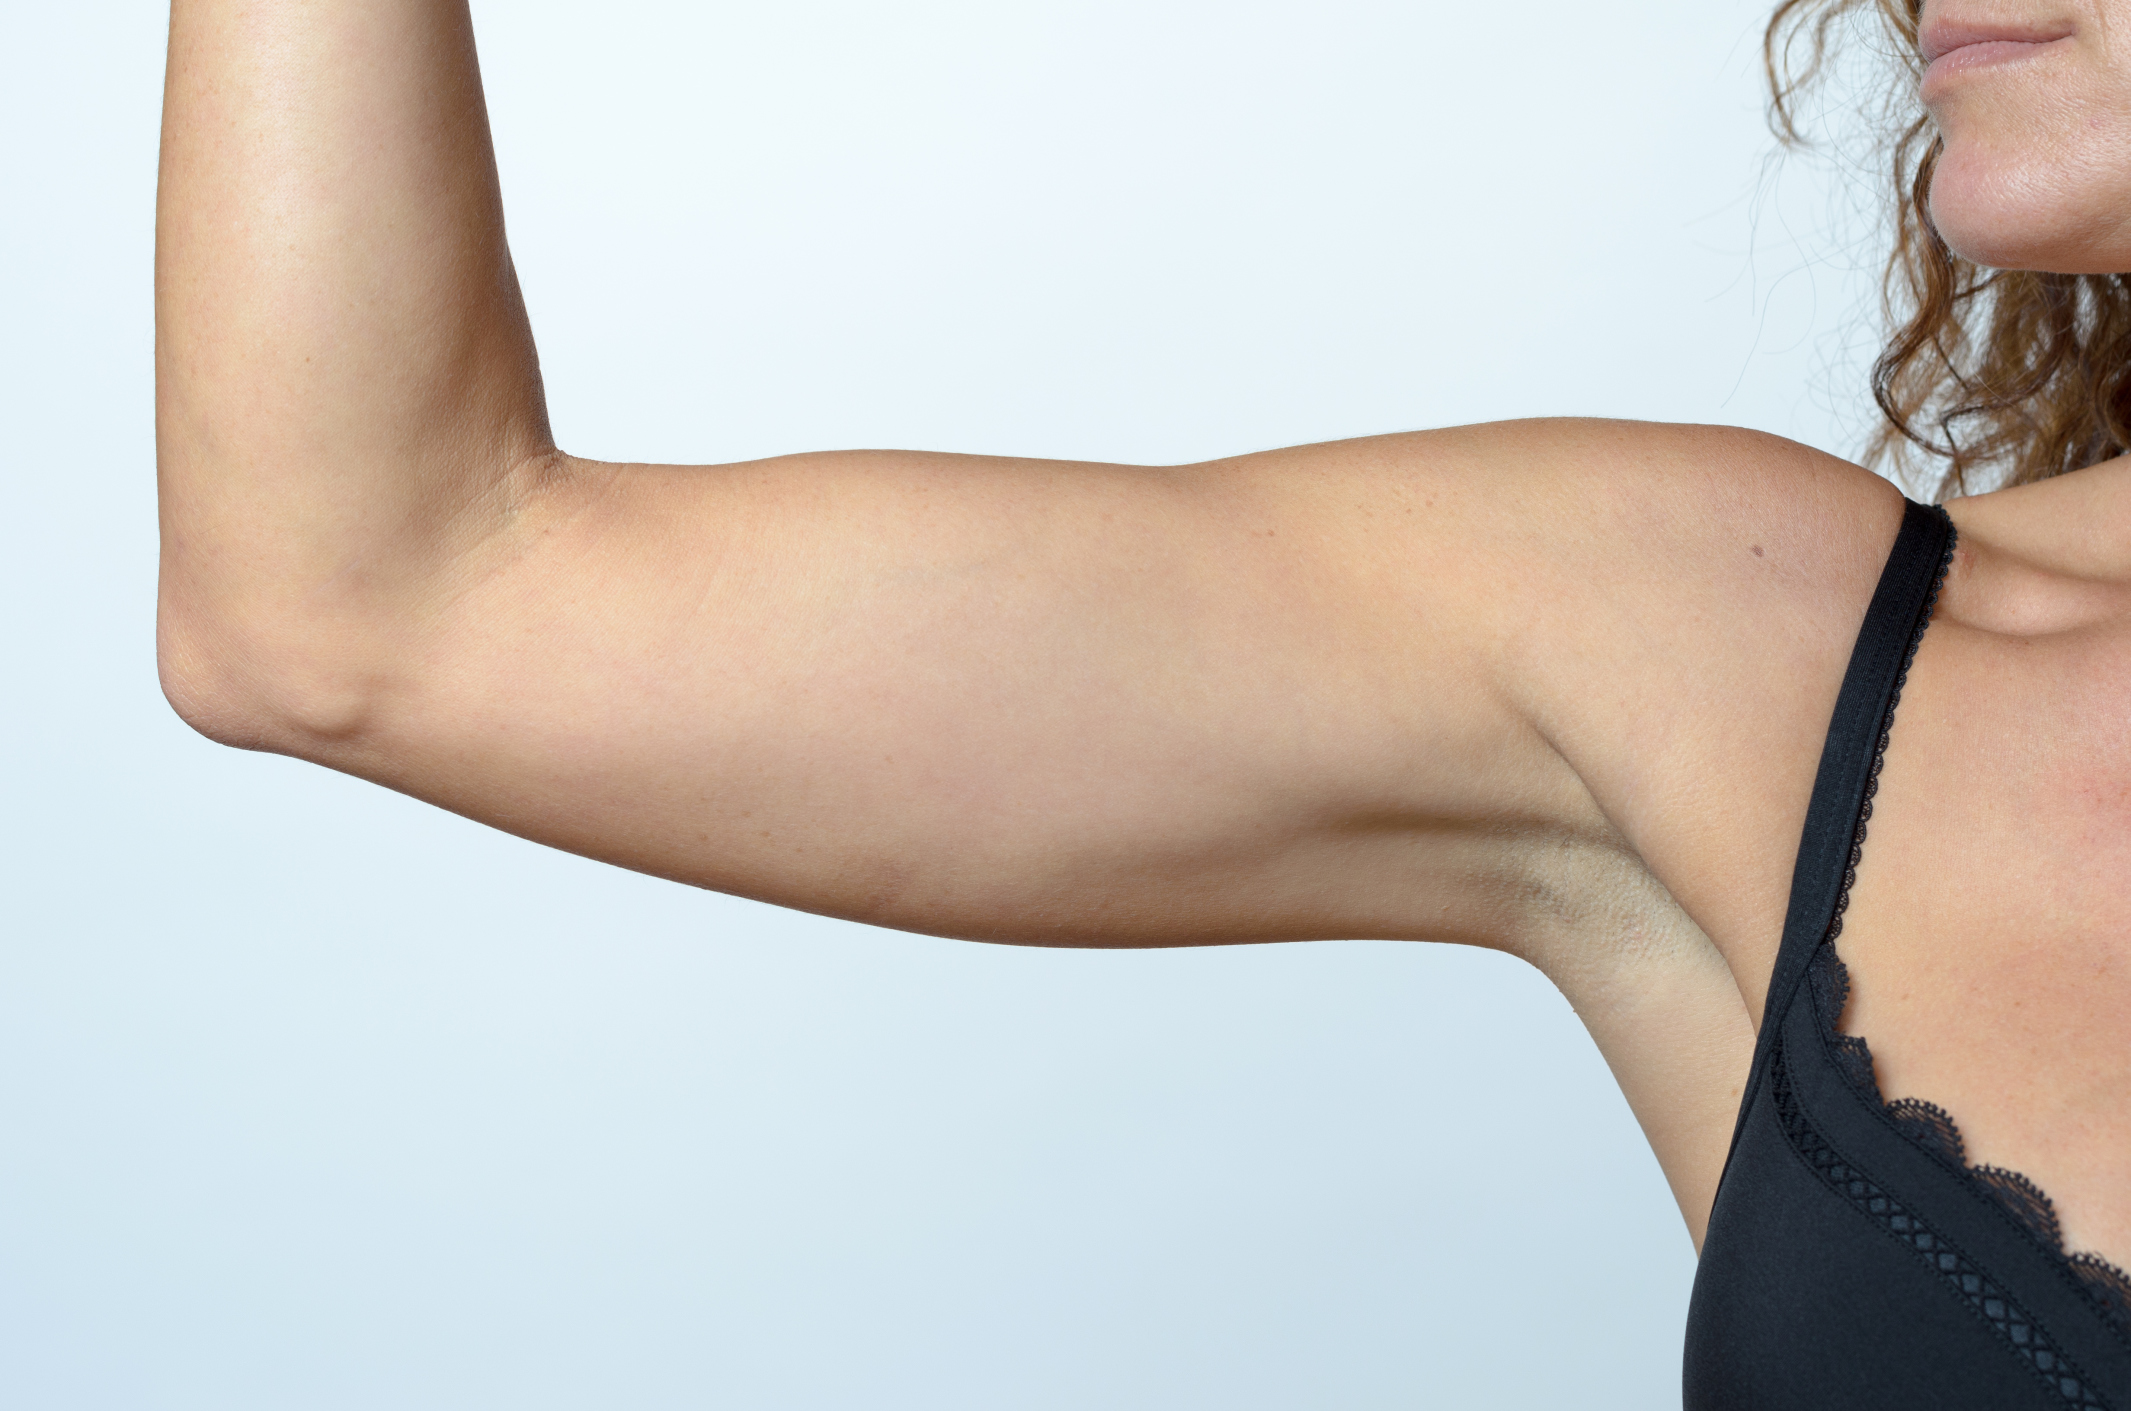 How to Gain Fat on the Arms photo